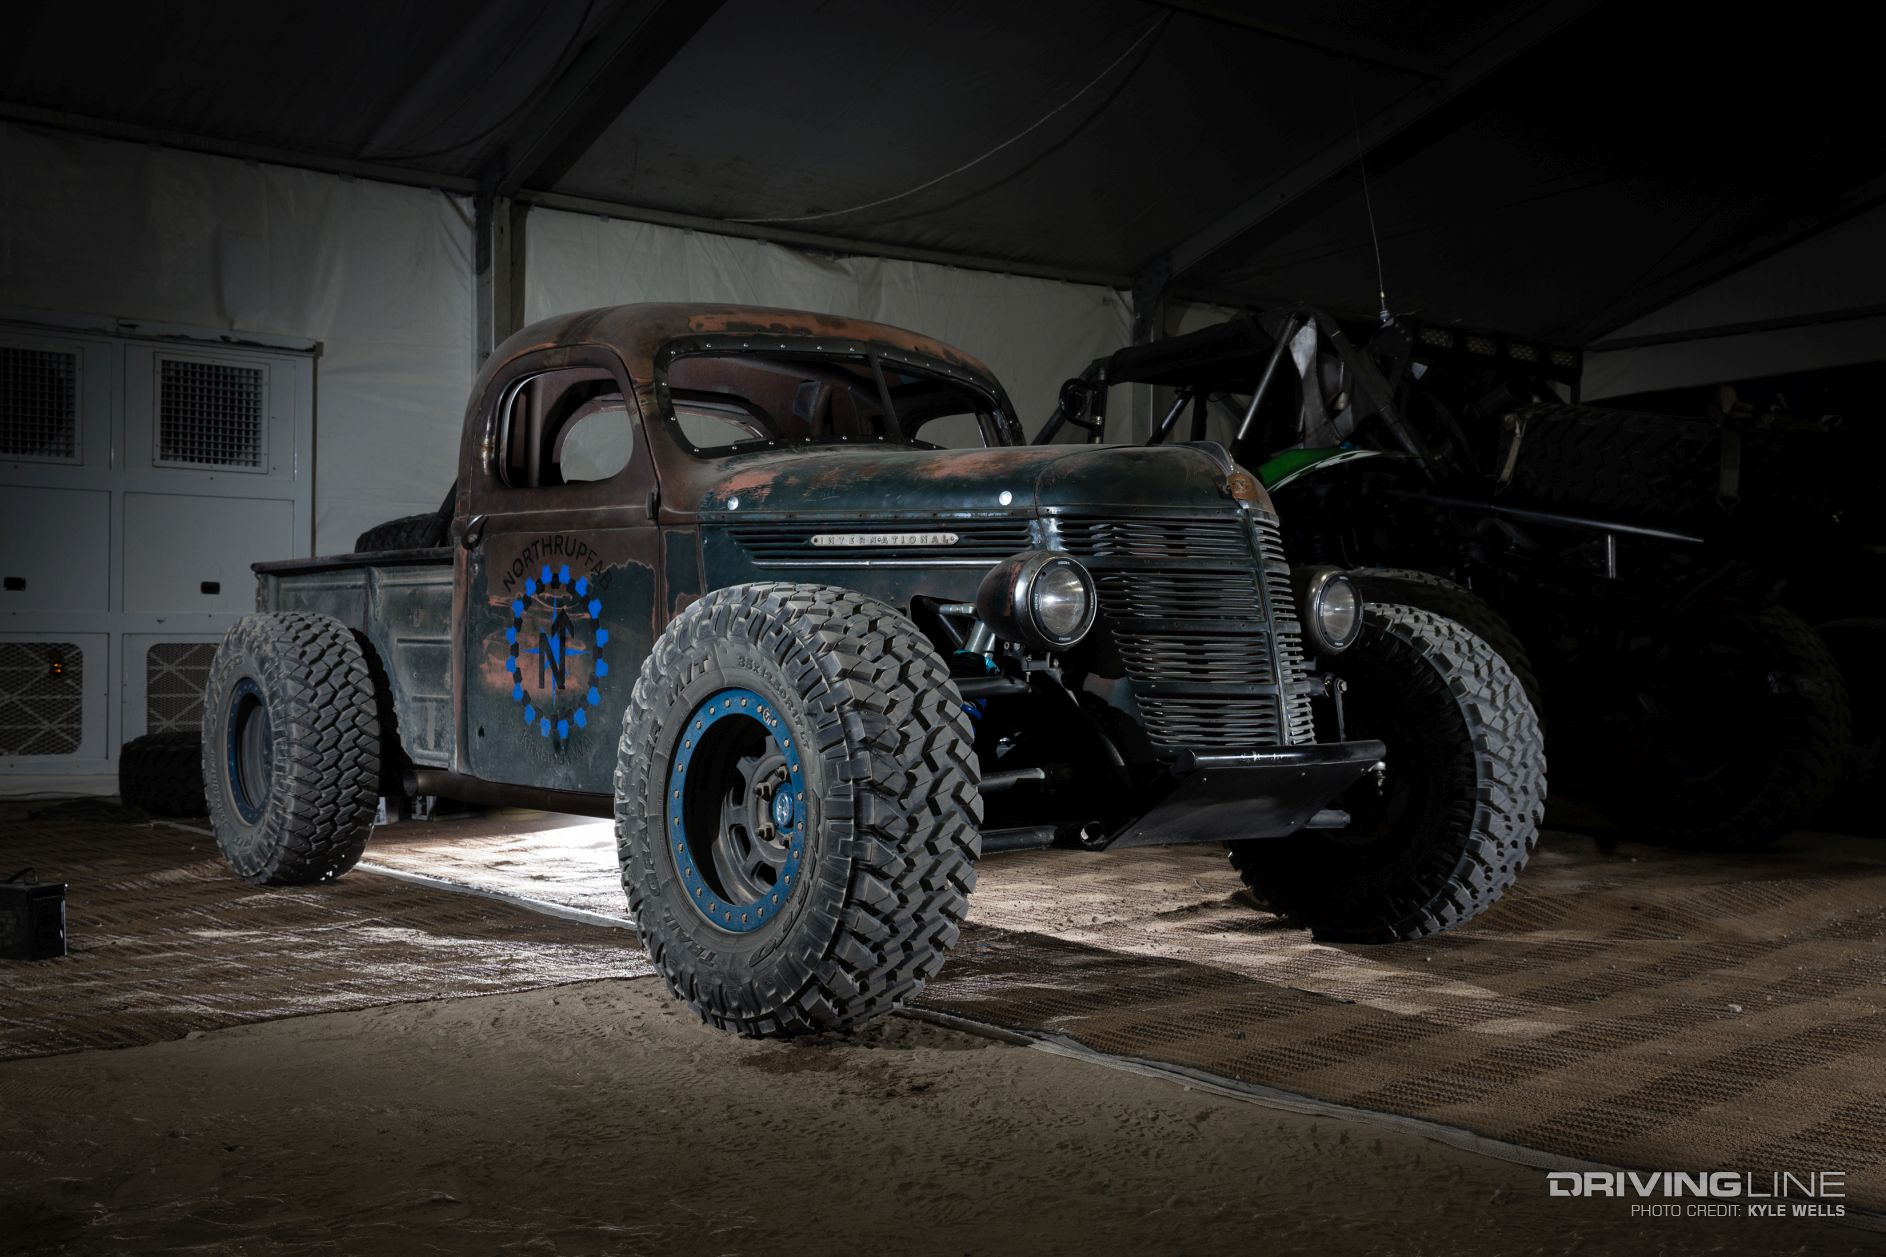 2016 Jeep Pickup >> Trophy Rat: A Hot Rod Pickup With Real Off-Road Chops | DrivingLine